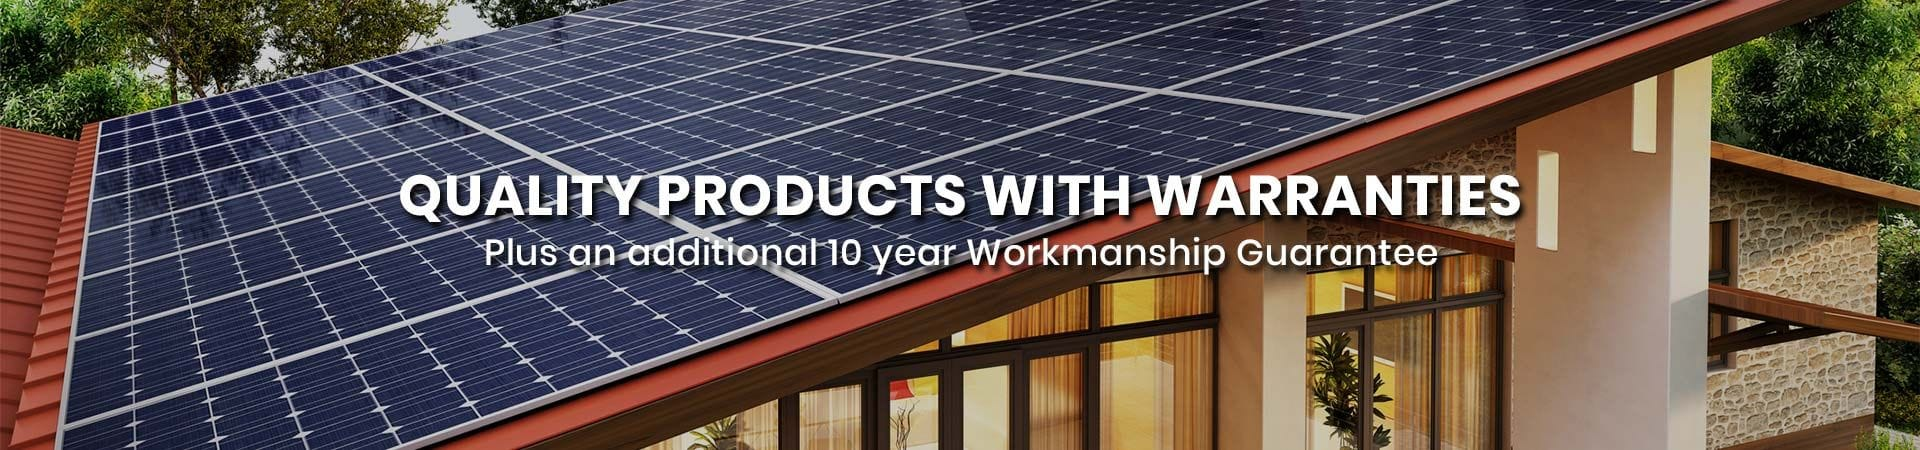 Residential Solar Panels and Solar Systems QLD & NSW